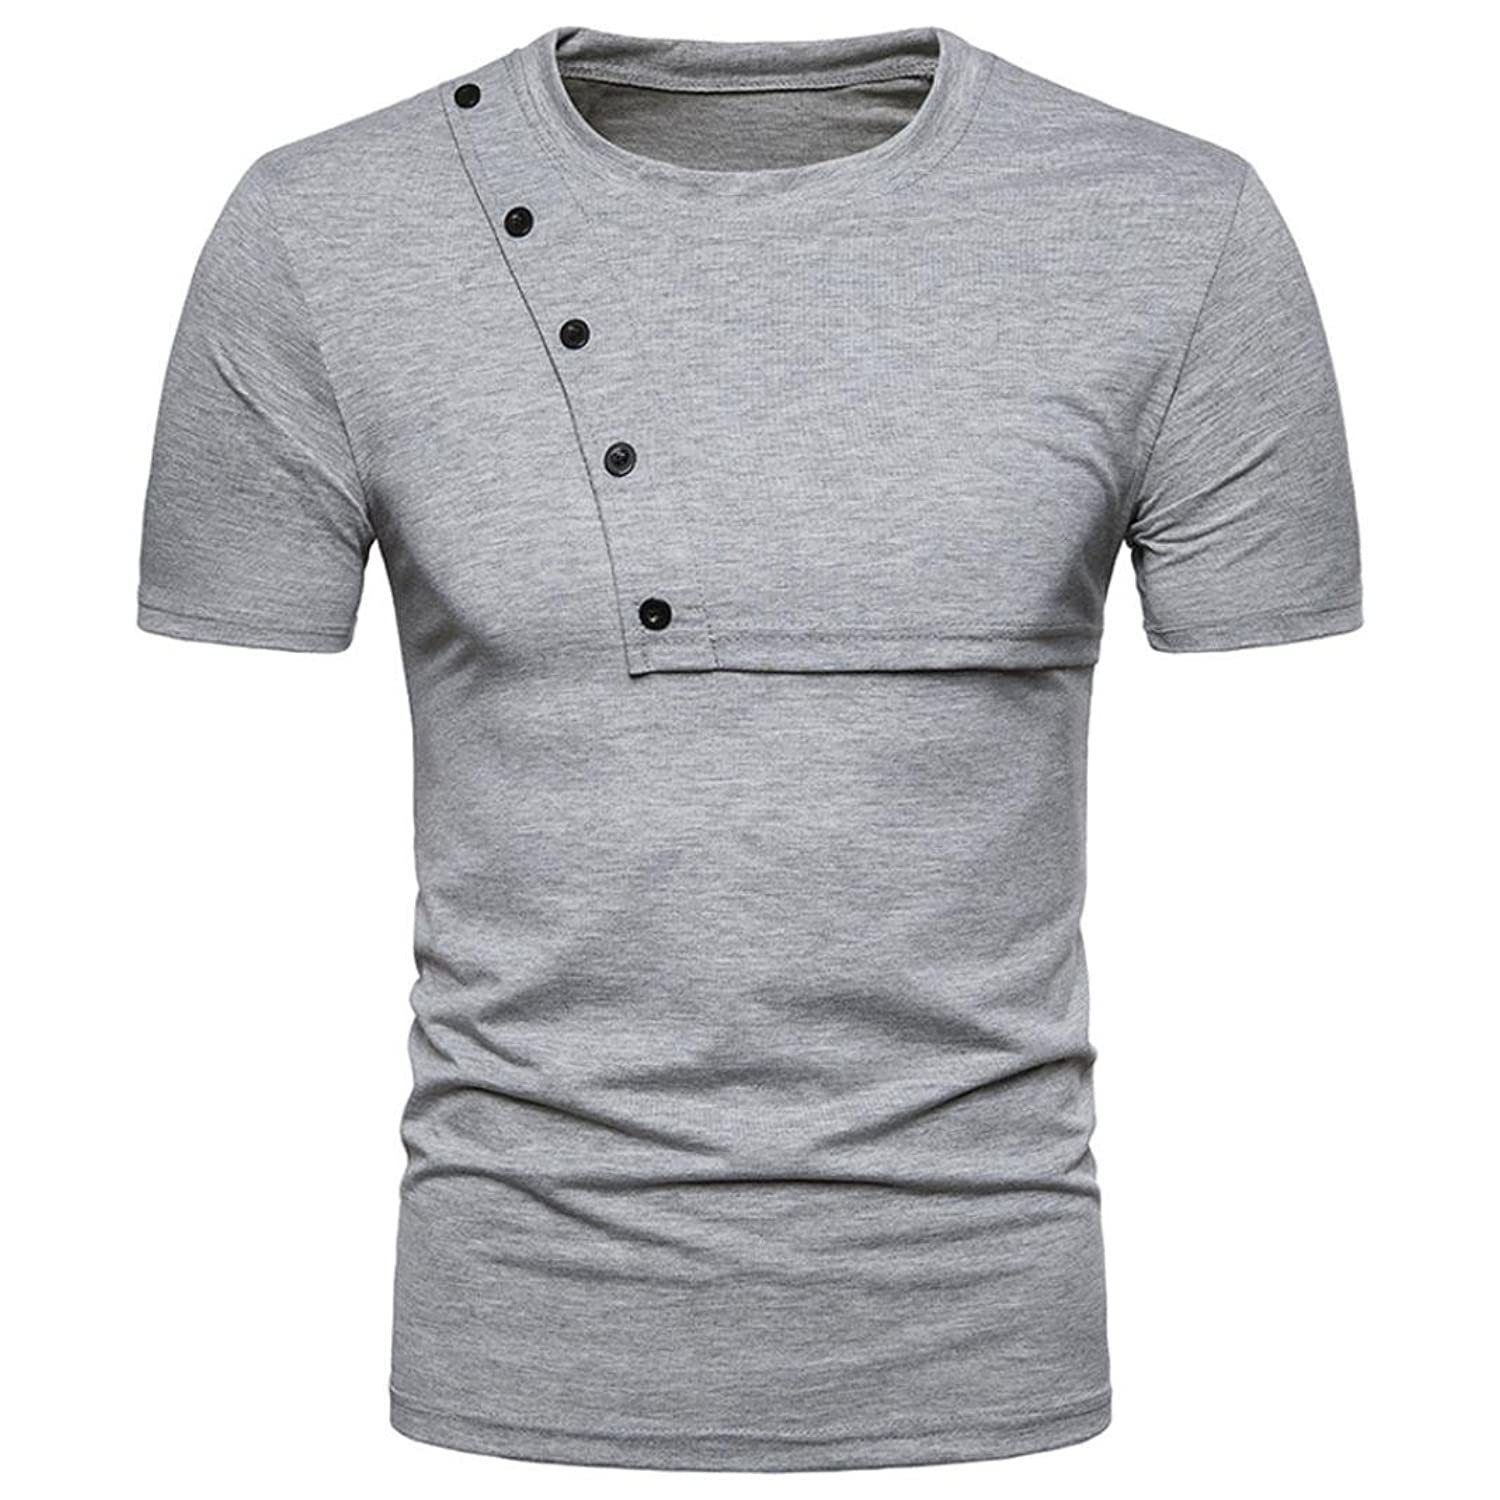 79719822e ☆SPE969 Top Blouse Hot Sale Men's Casual Slim Zipper Short Sleeve T Shirt  ☆Friends come and go, but the championship banner has been there, blowing  in the ...